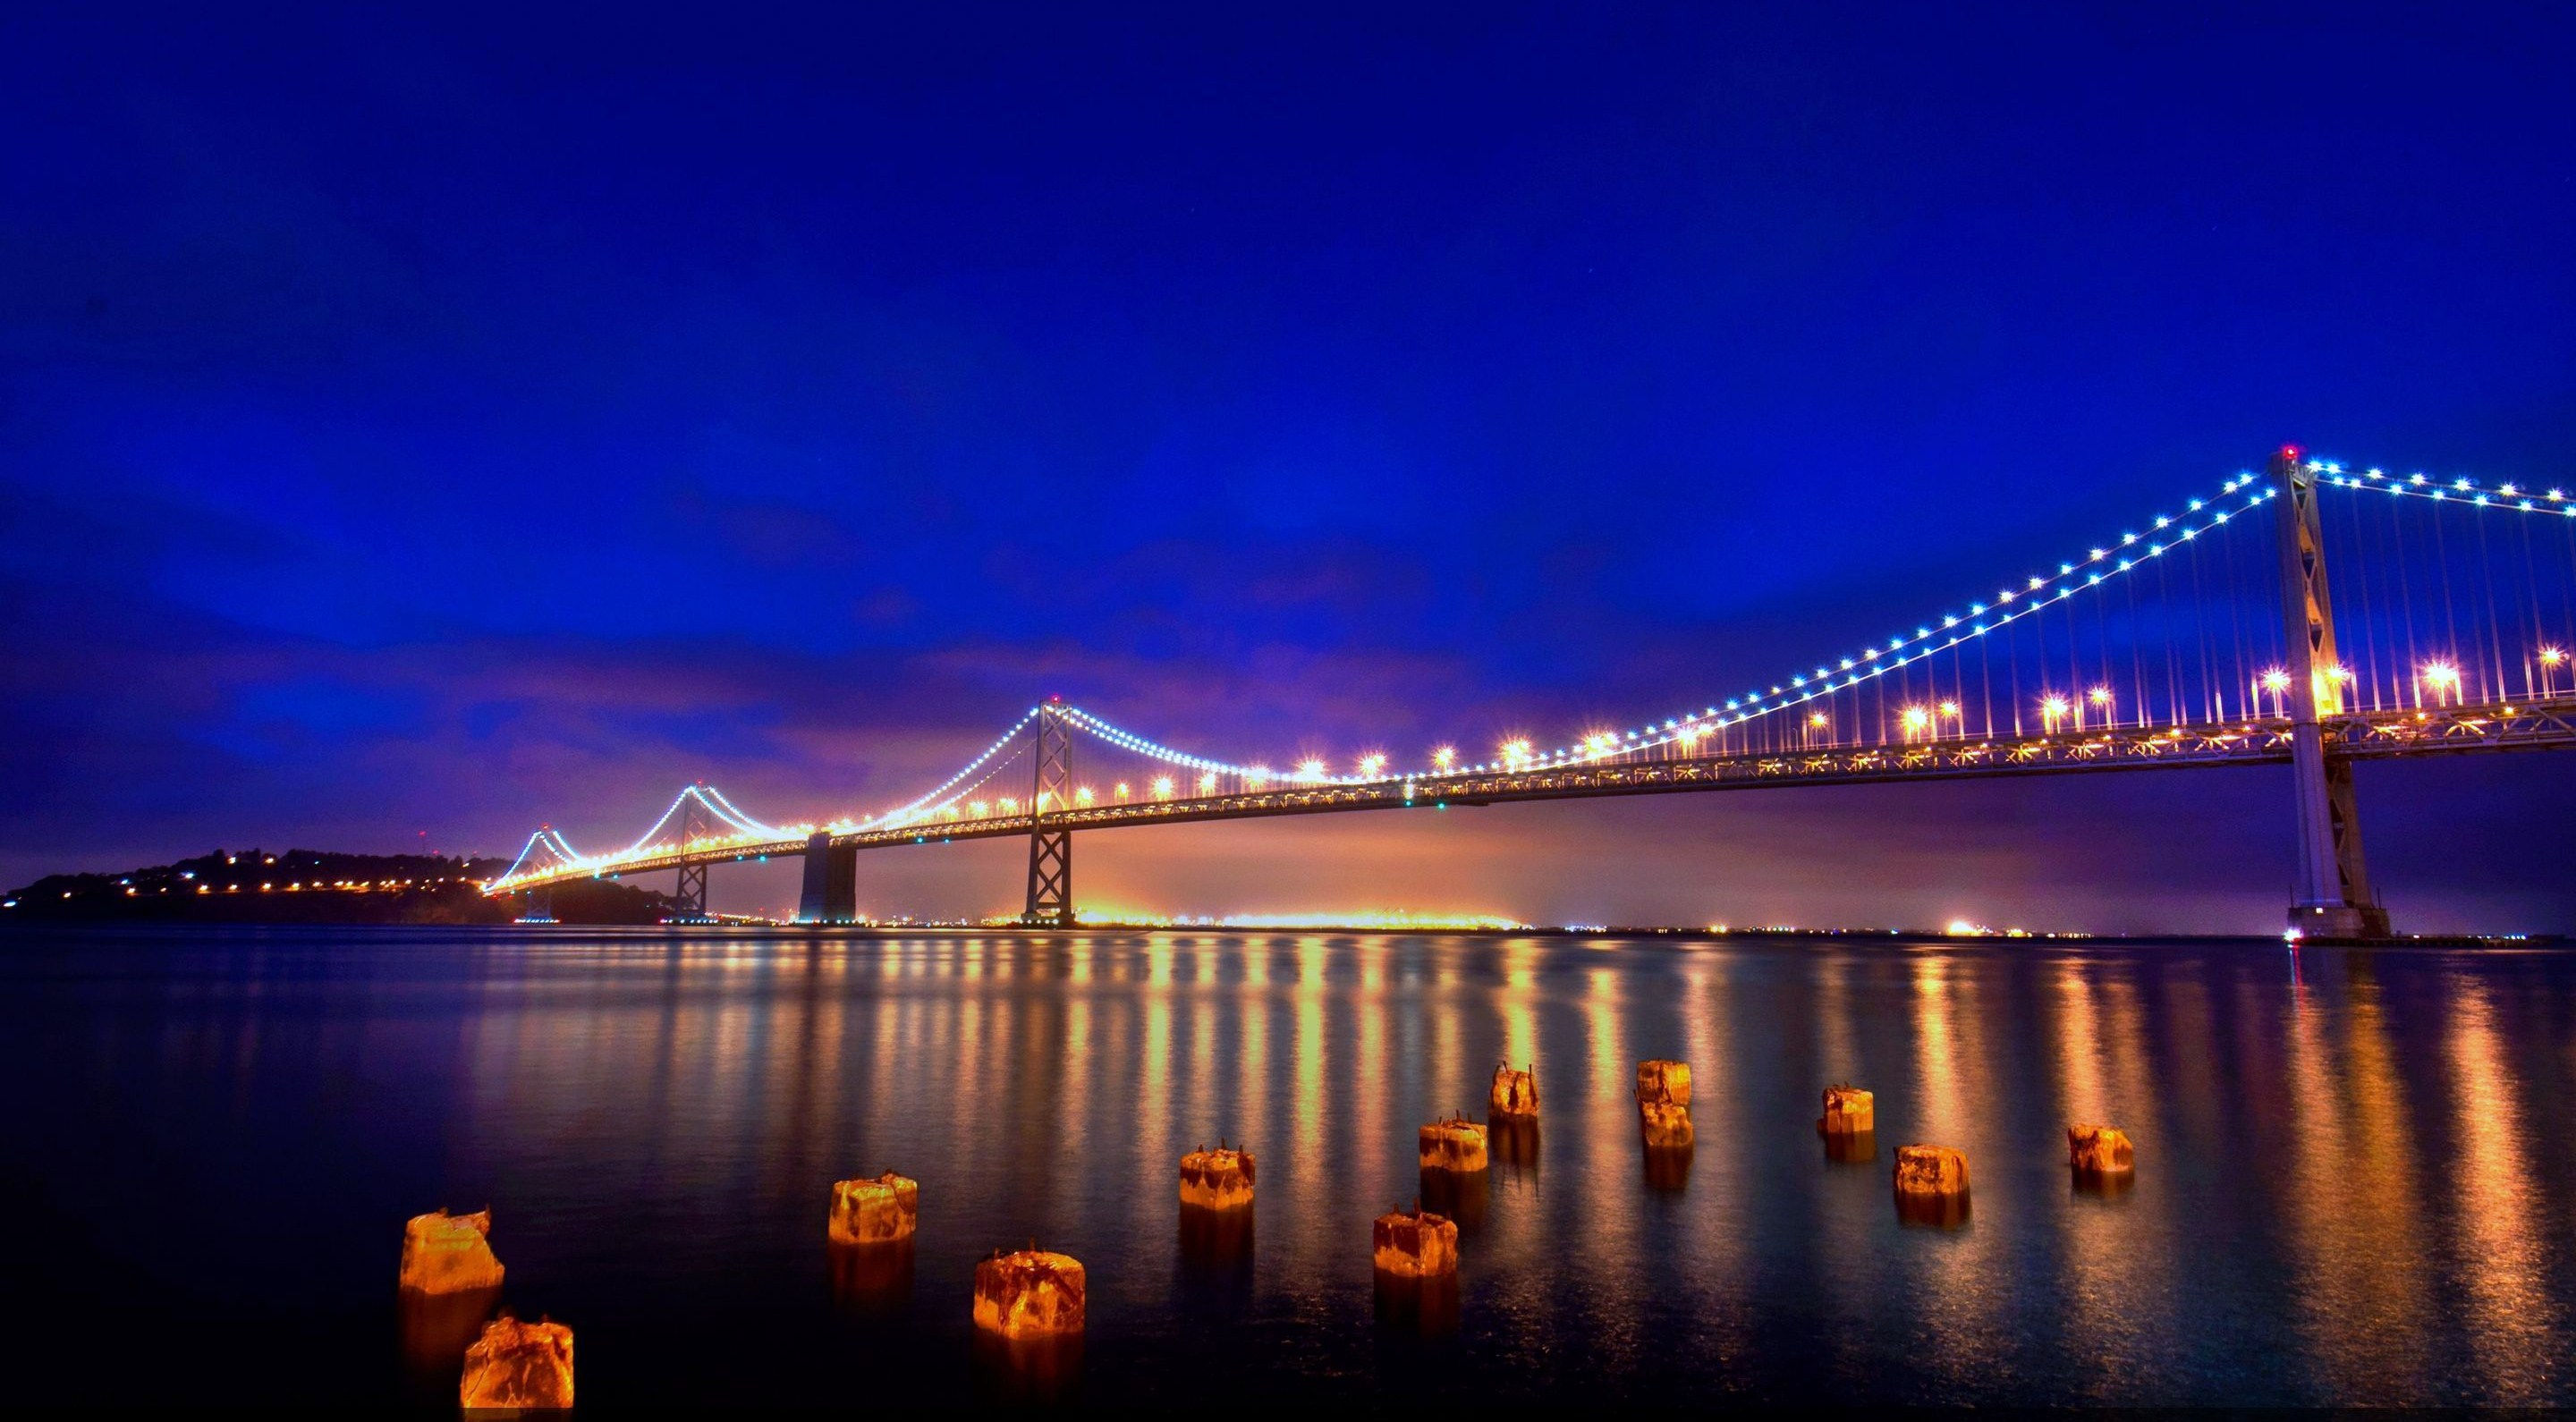 san-francisco-4k-hd-wallpapers-unabuenaidea.es (29)